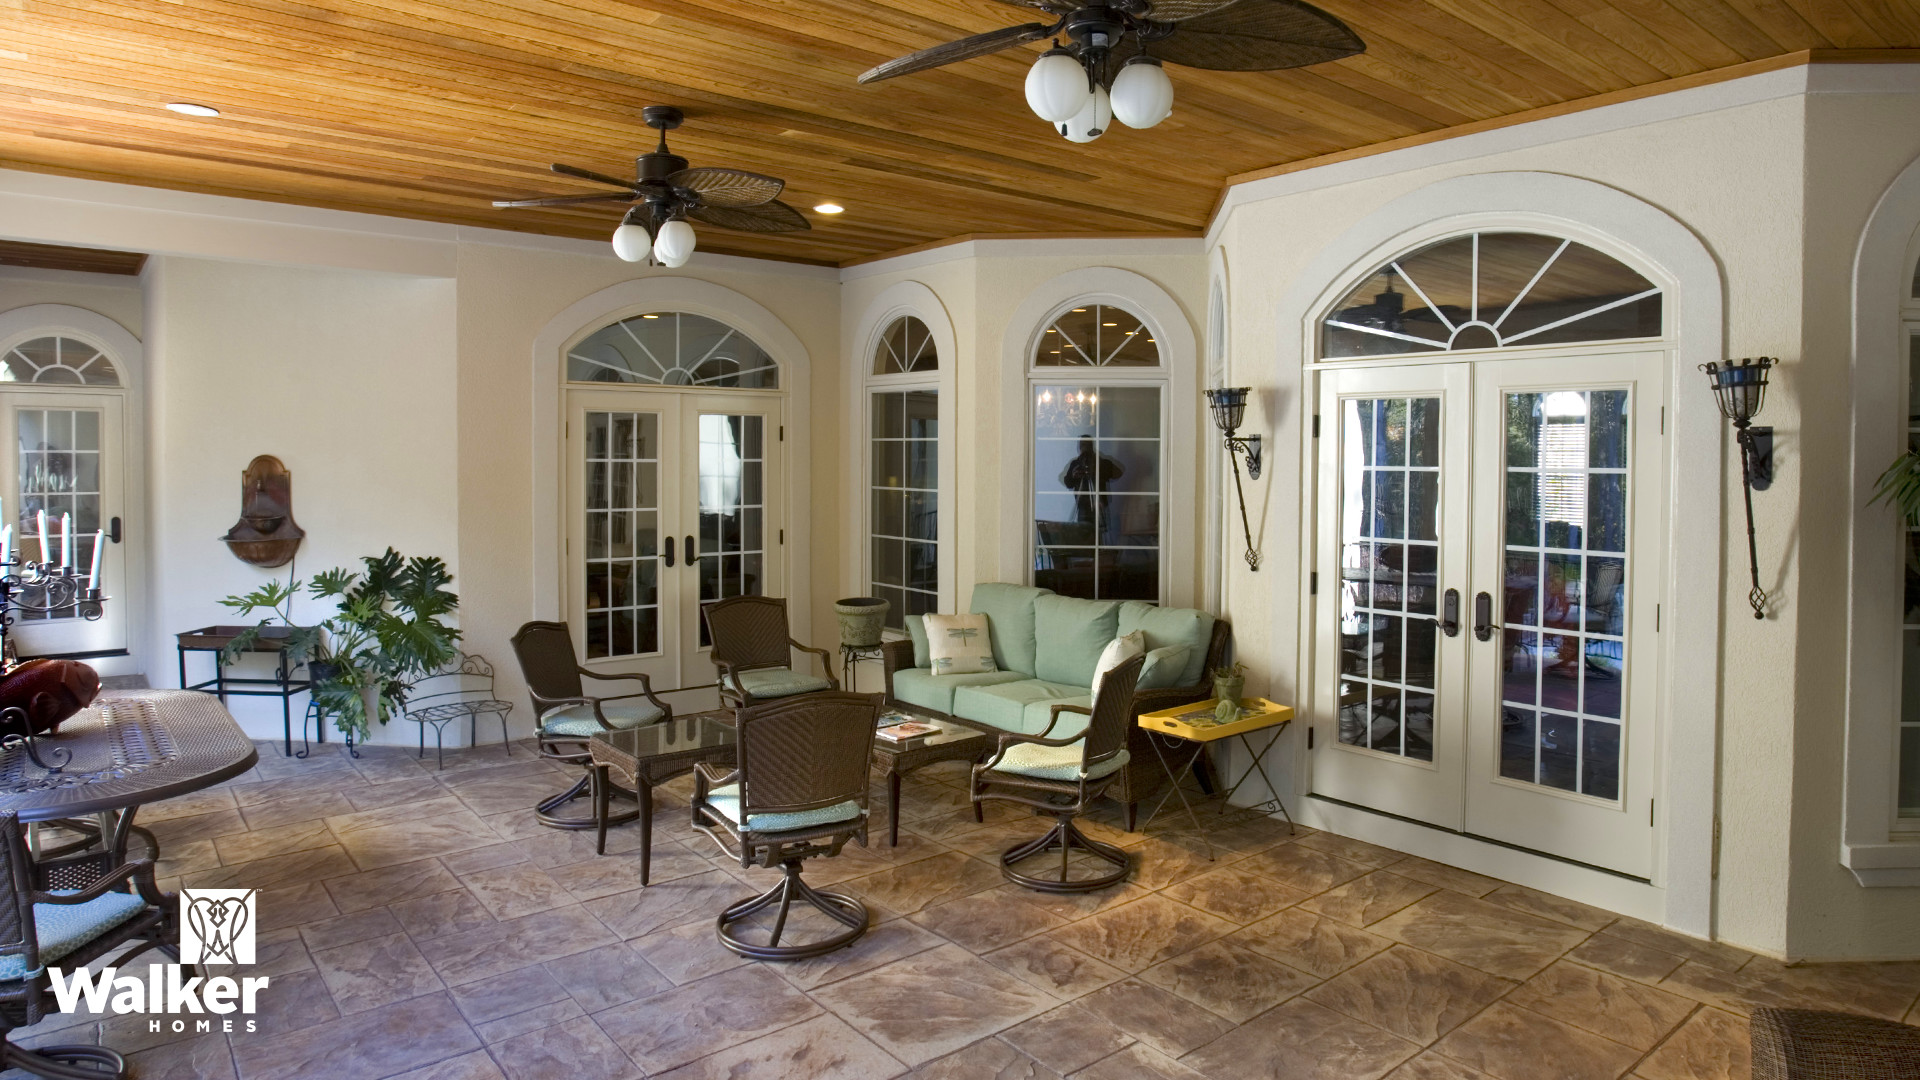 A Covered Porch from a custom home design by Walker Homes in Glen Allen, Virginia